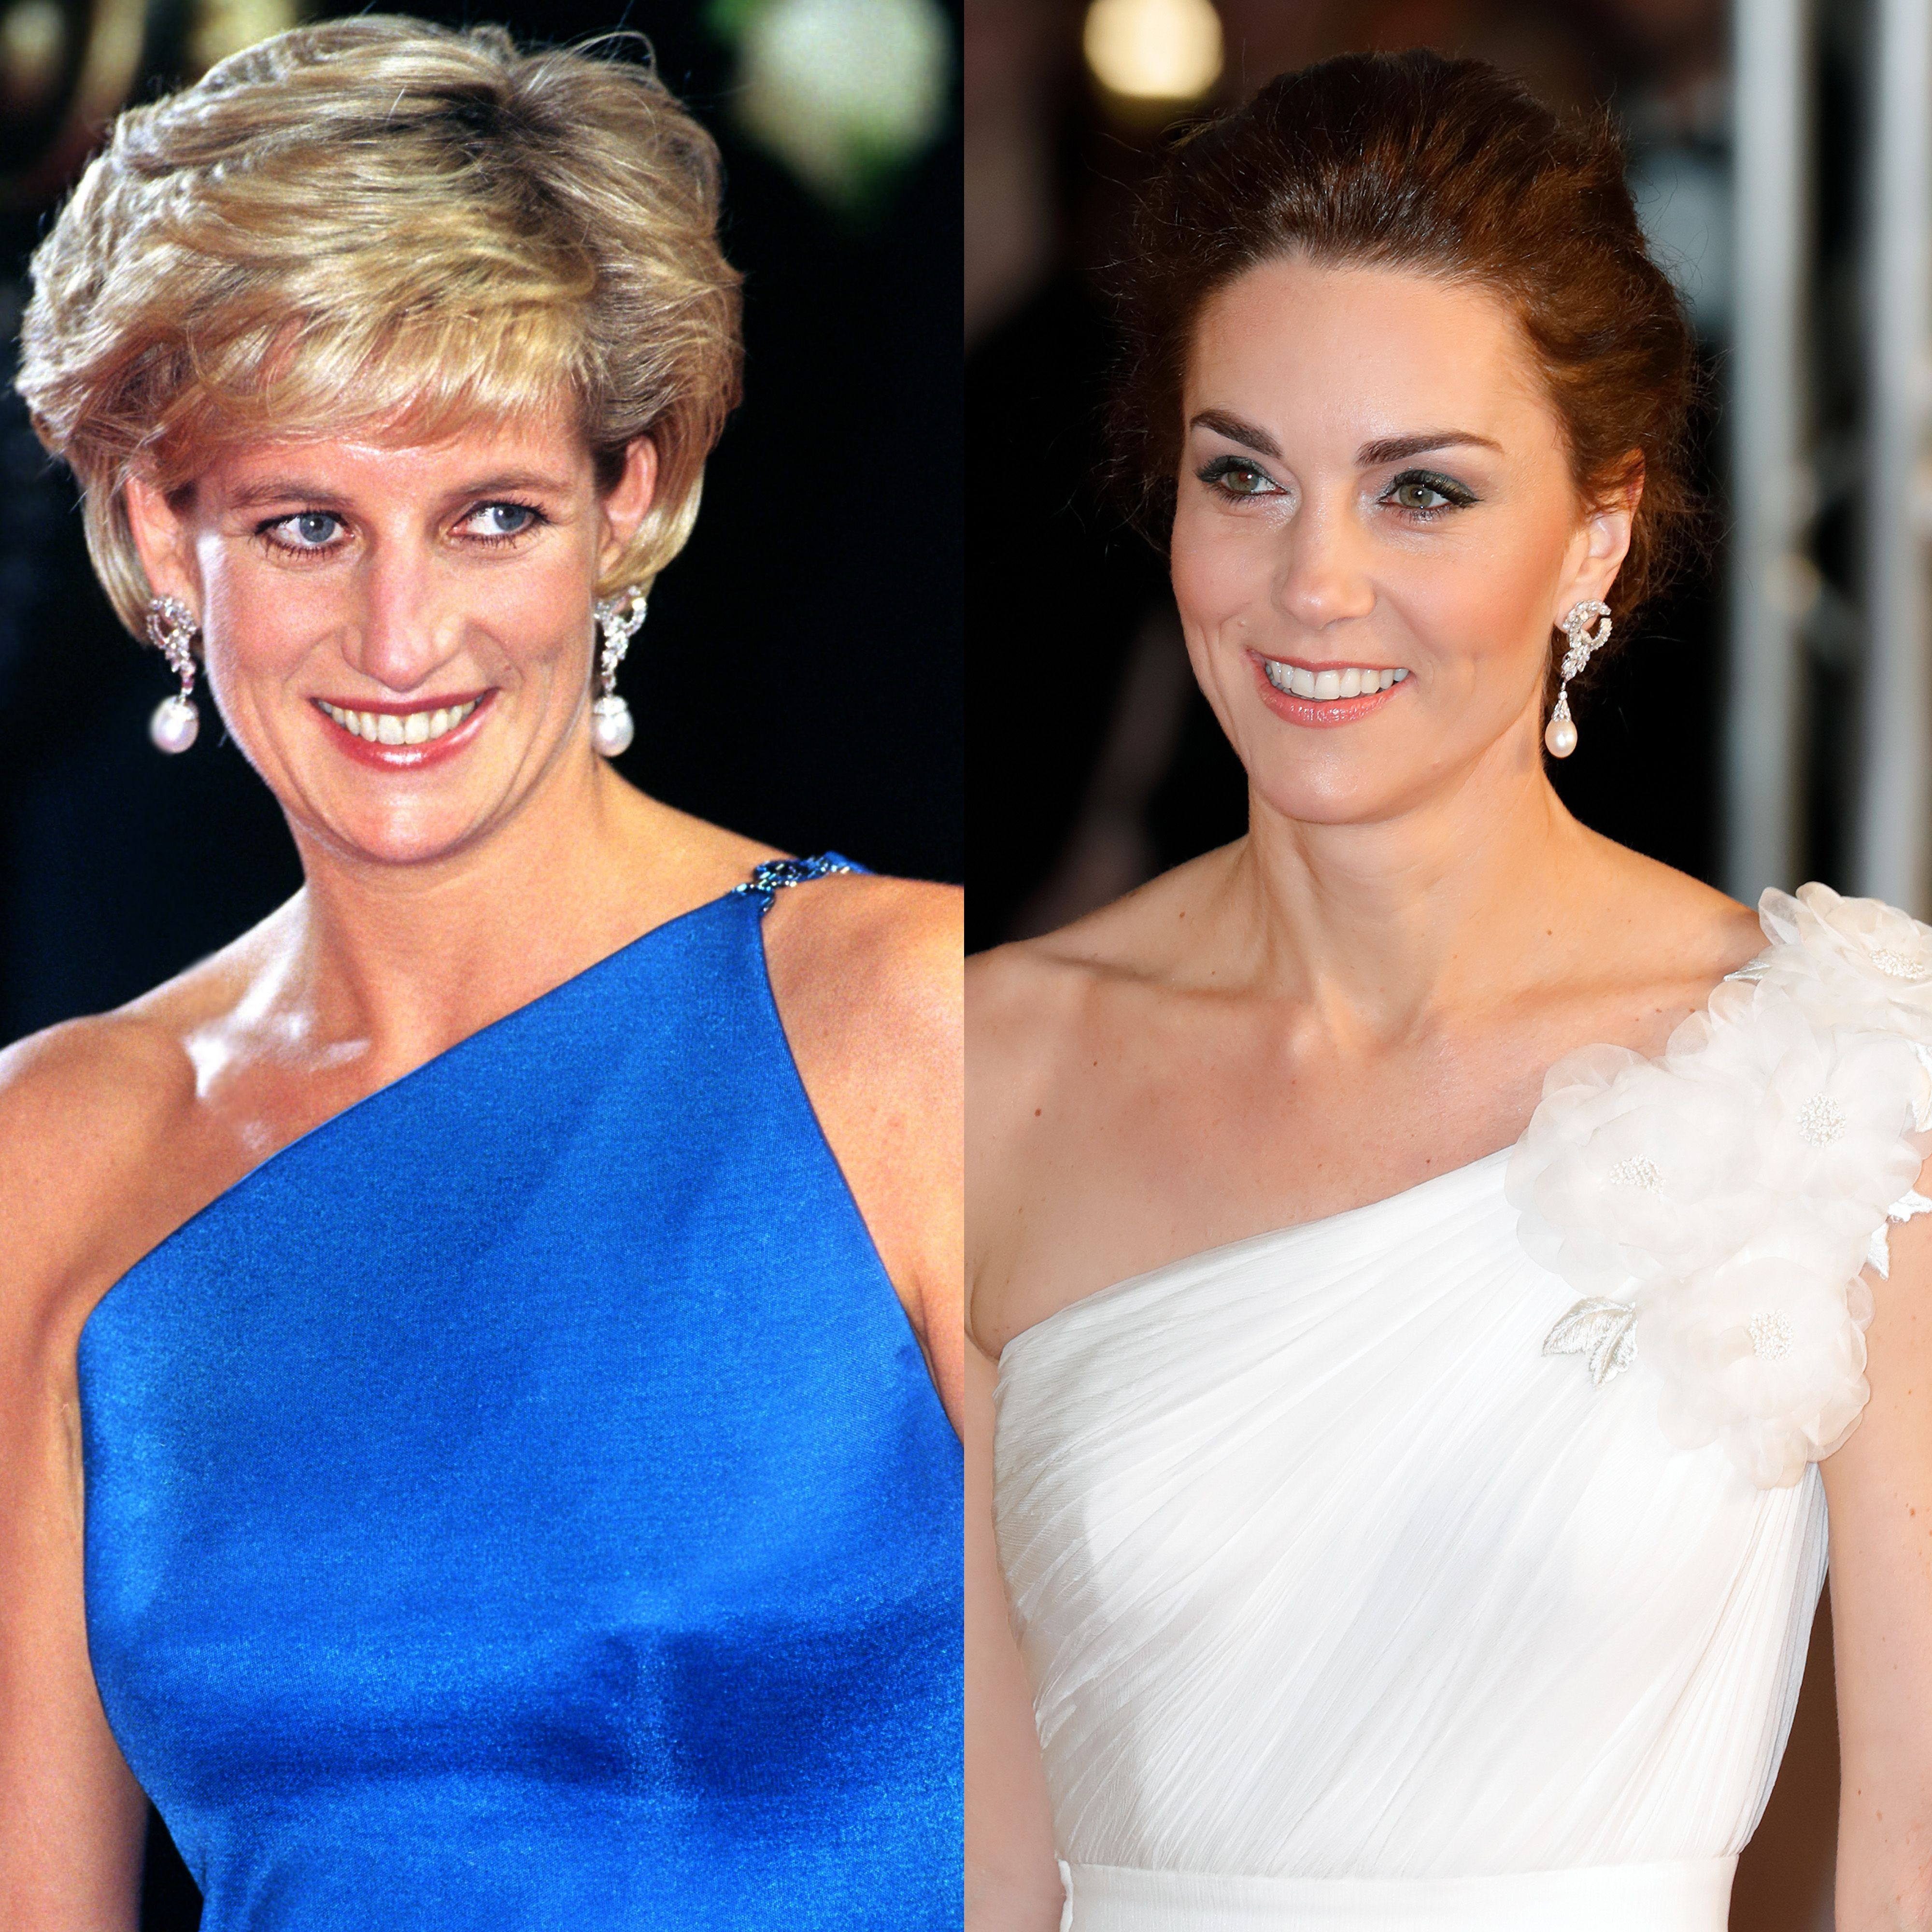 kate middleton wearing princess diana s jewelry kate inherited diana s engagement ring earrings town country magazine